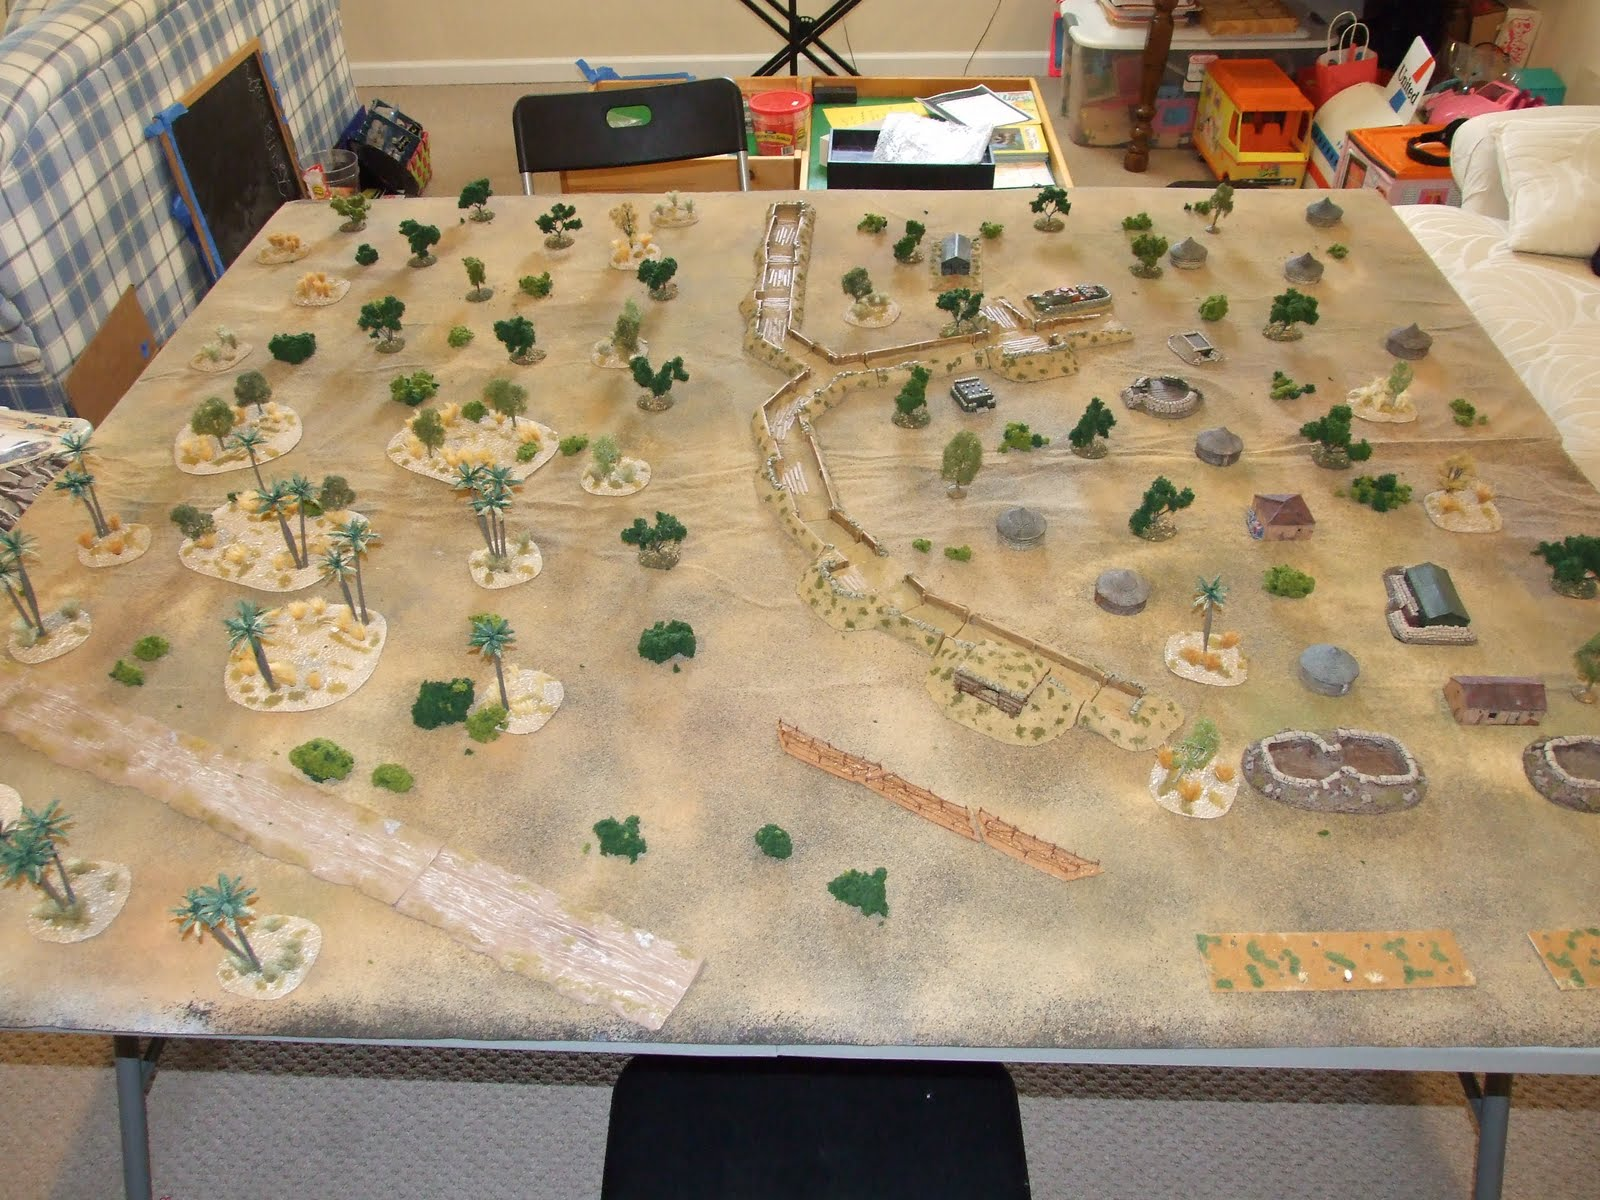 The latest iteration of the terrain setup.